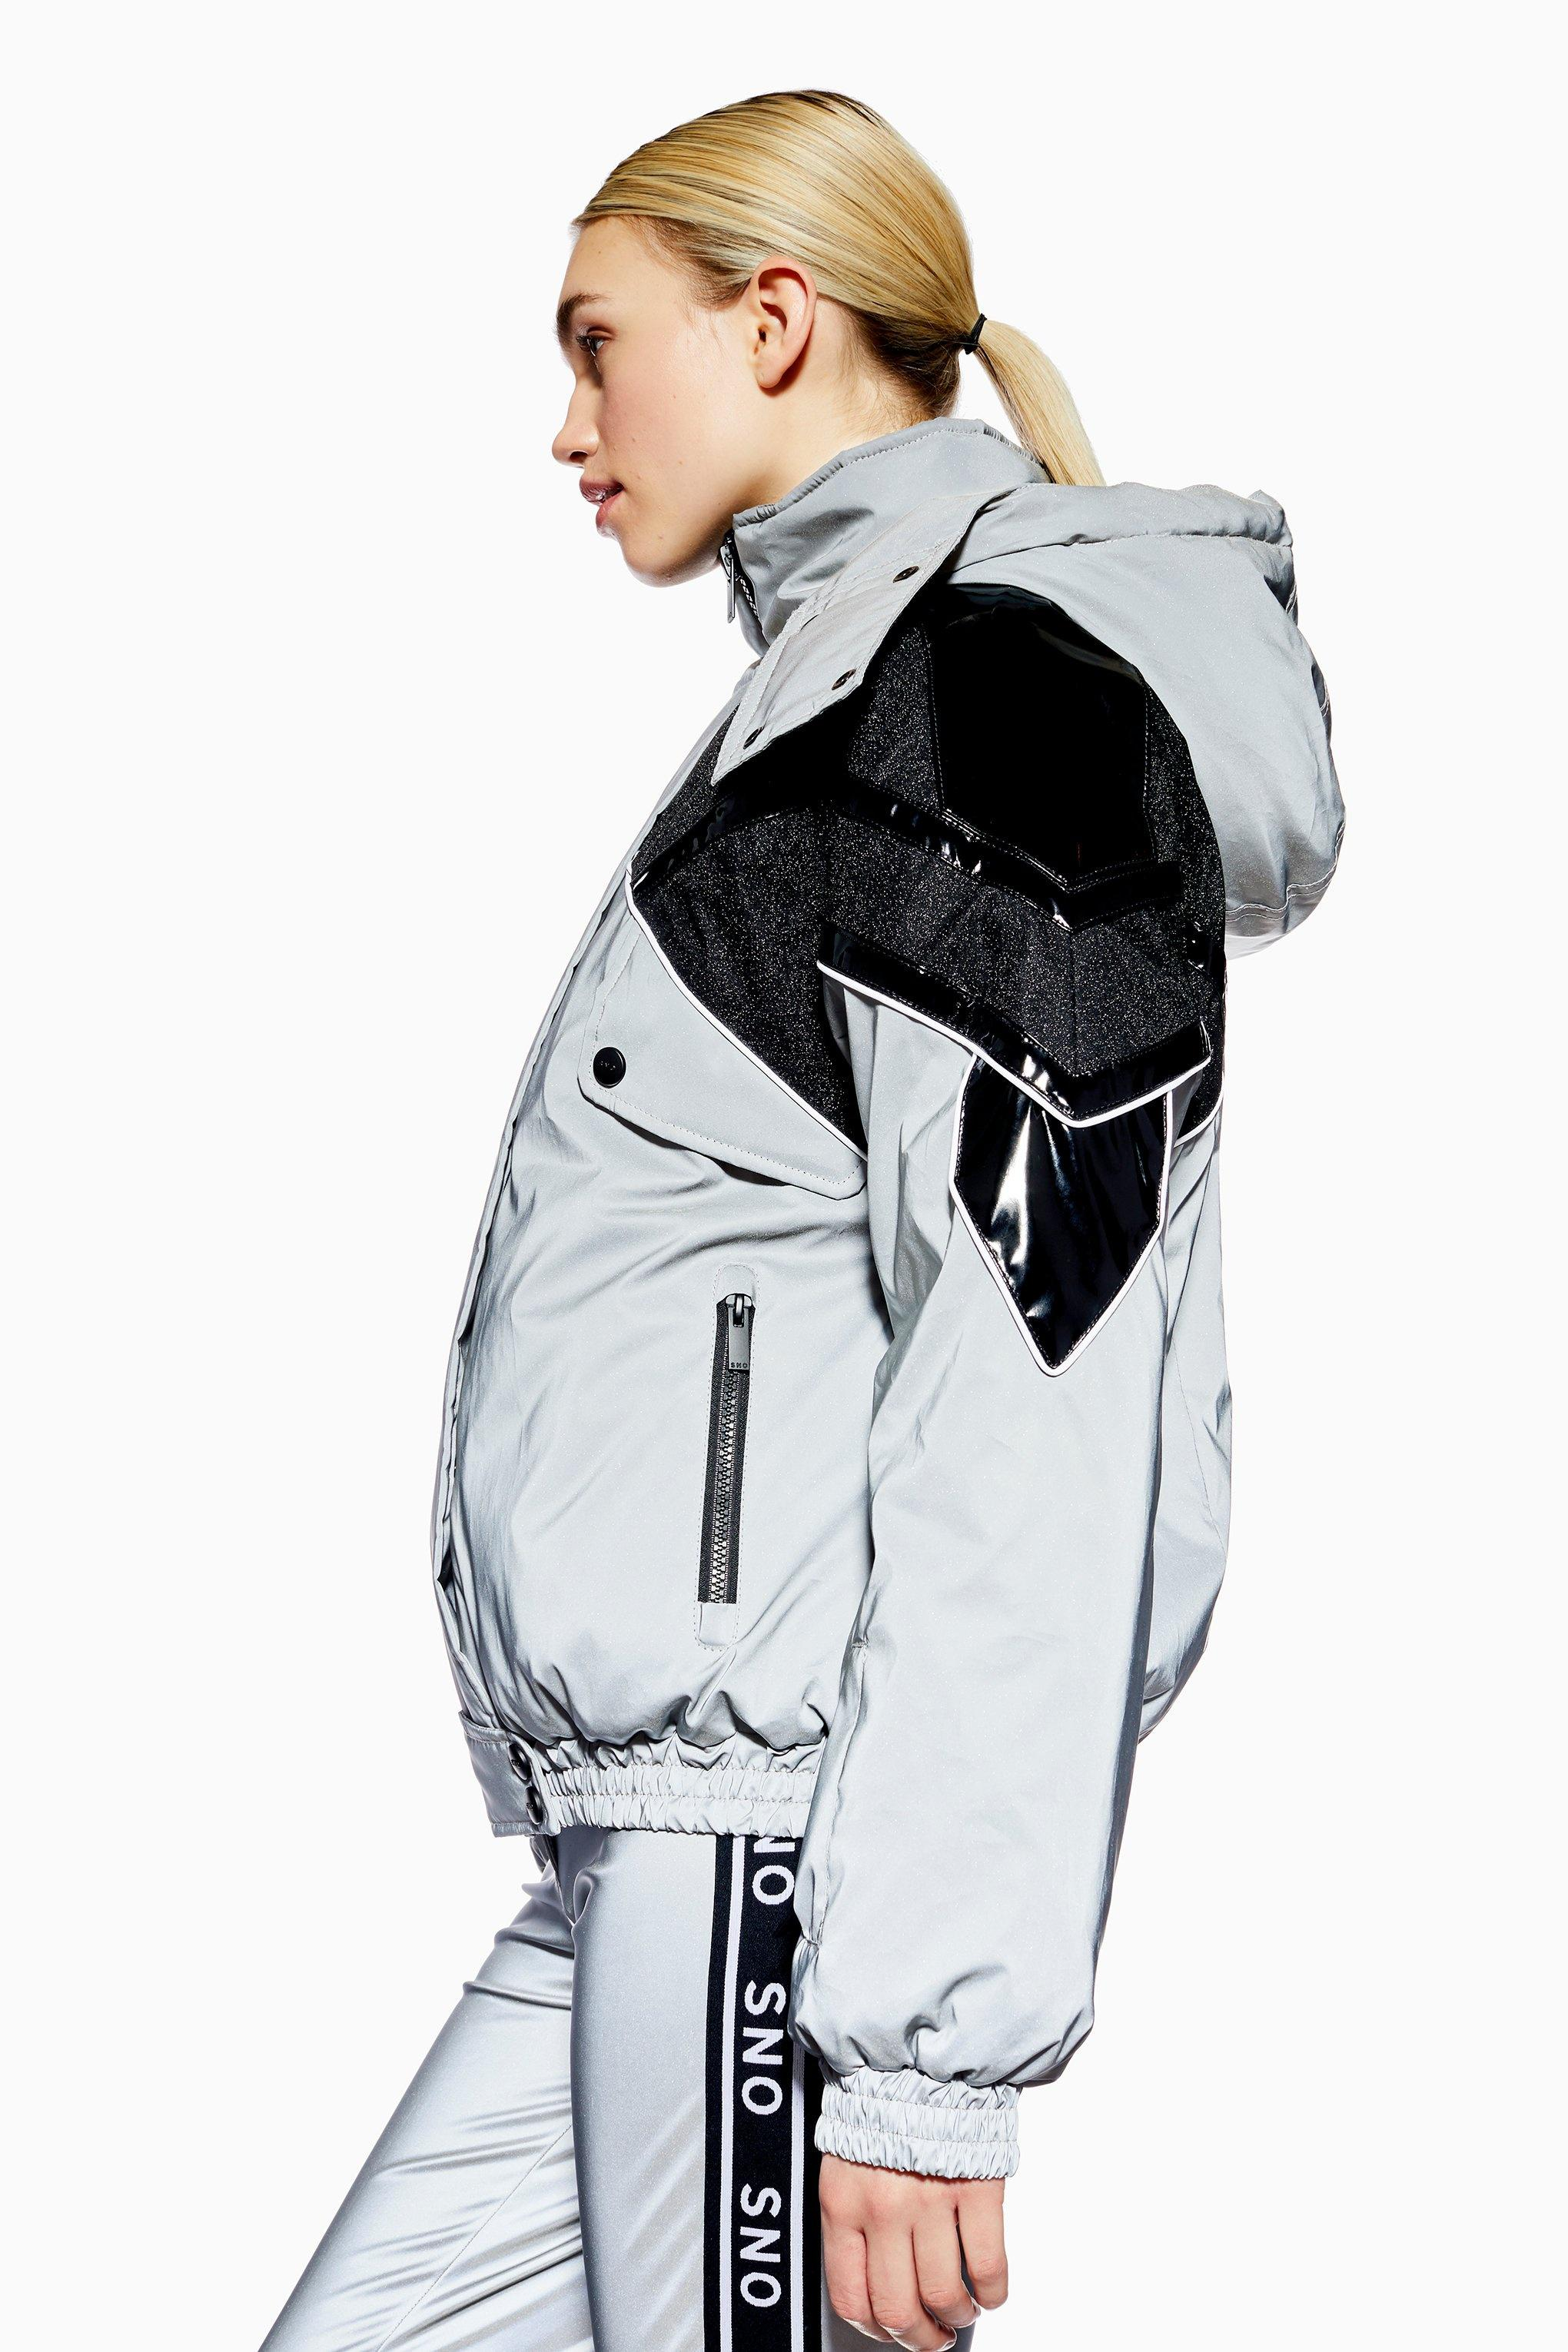 4473c0c6665e TOPSHOP reflective Jacket By Sno in Metallic - Save 72% - Lyst